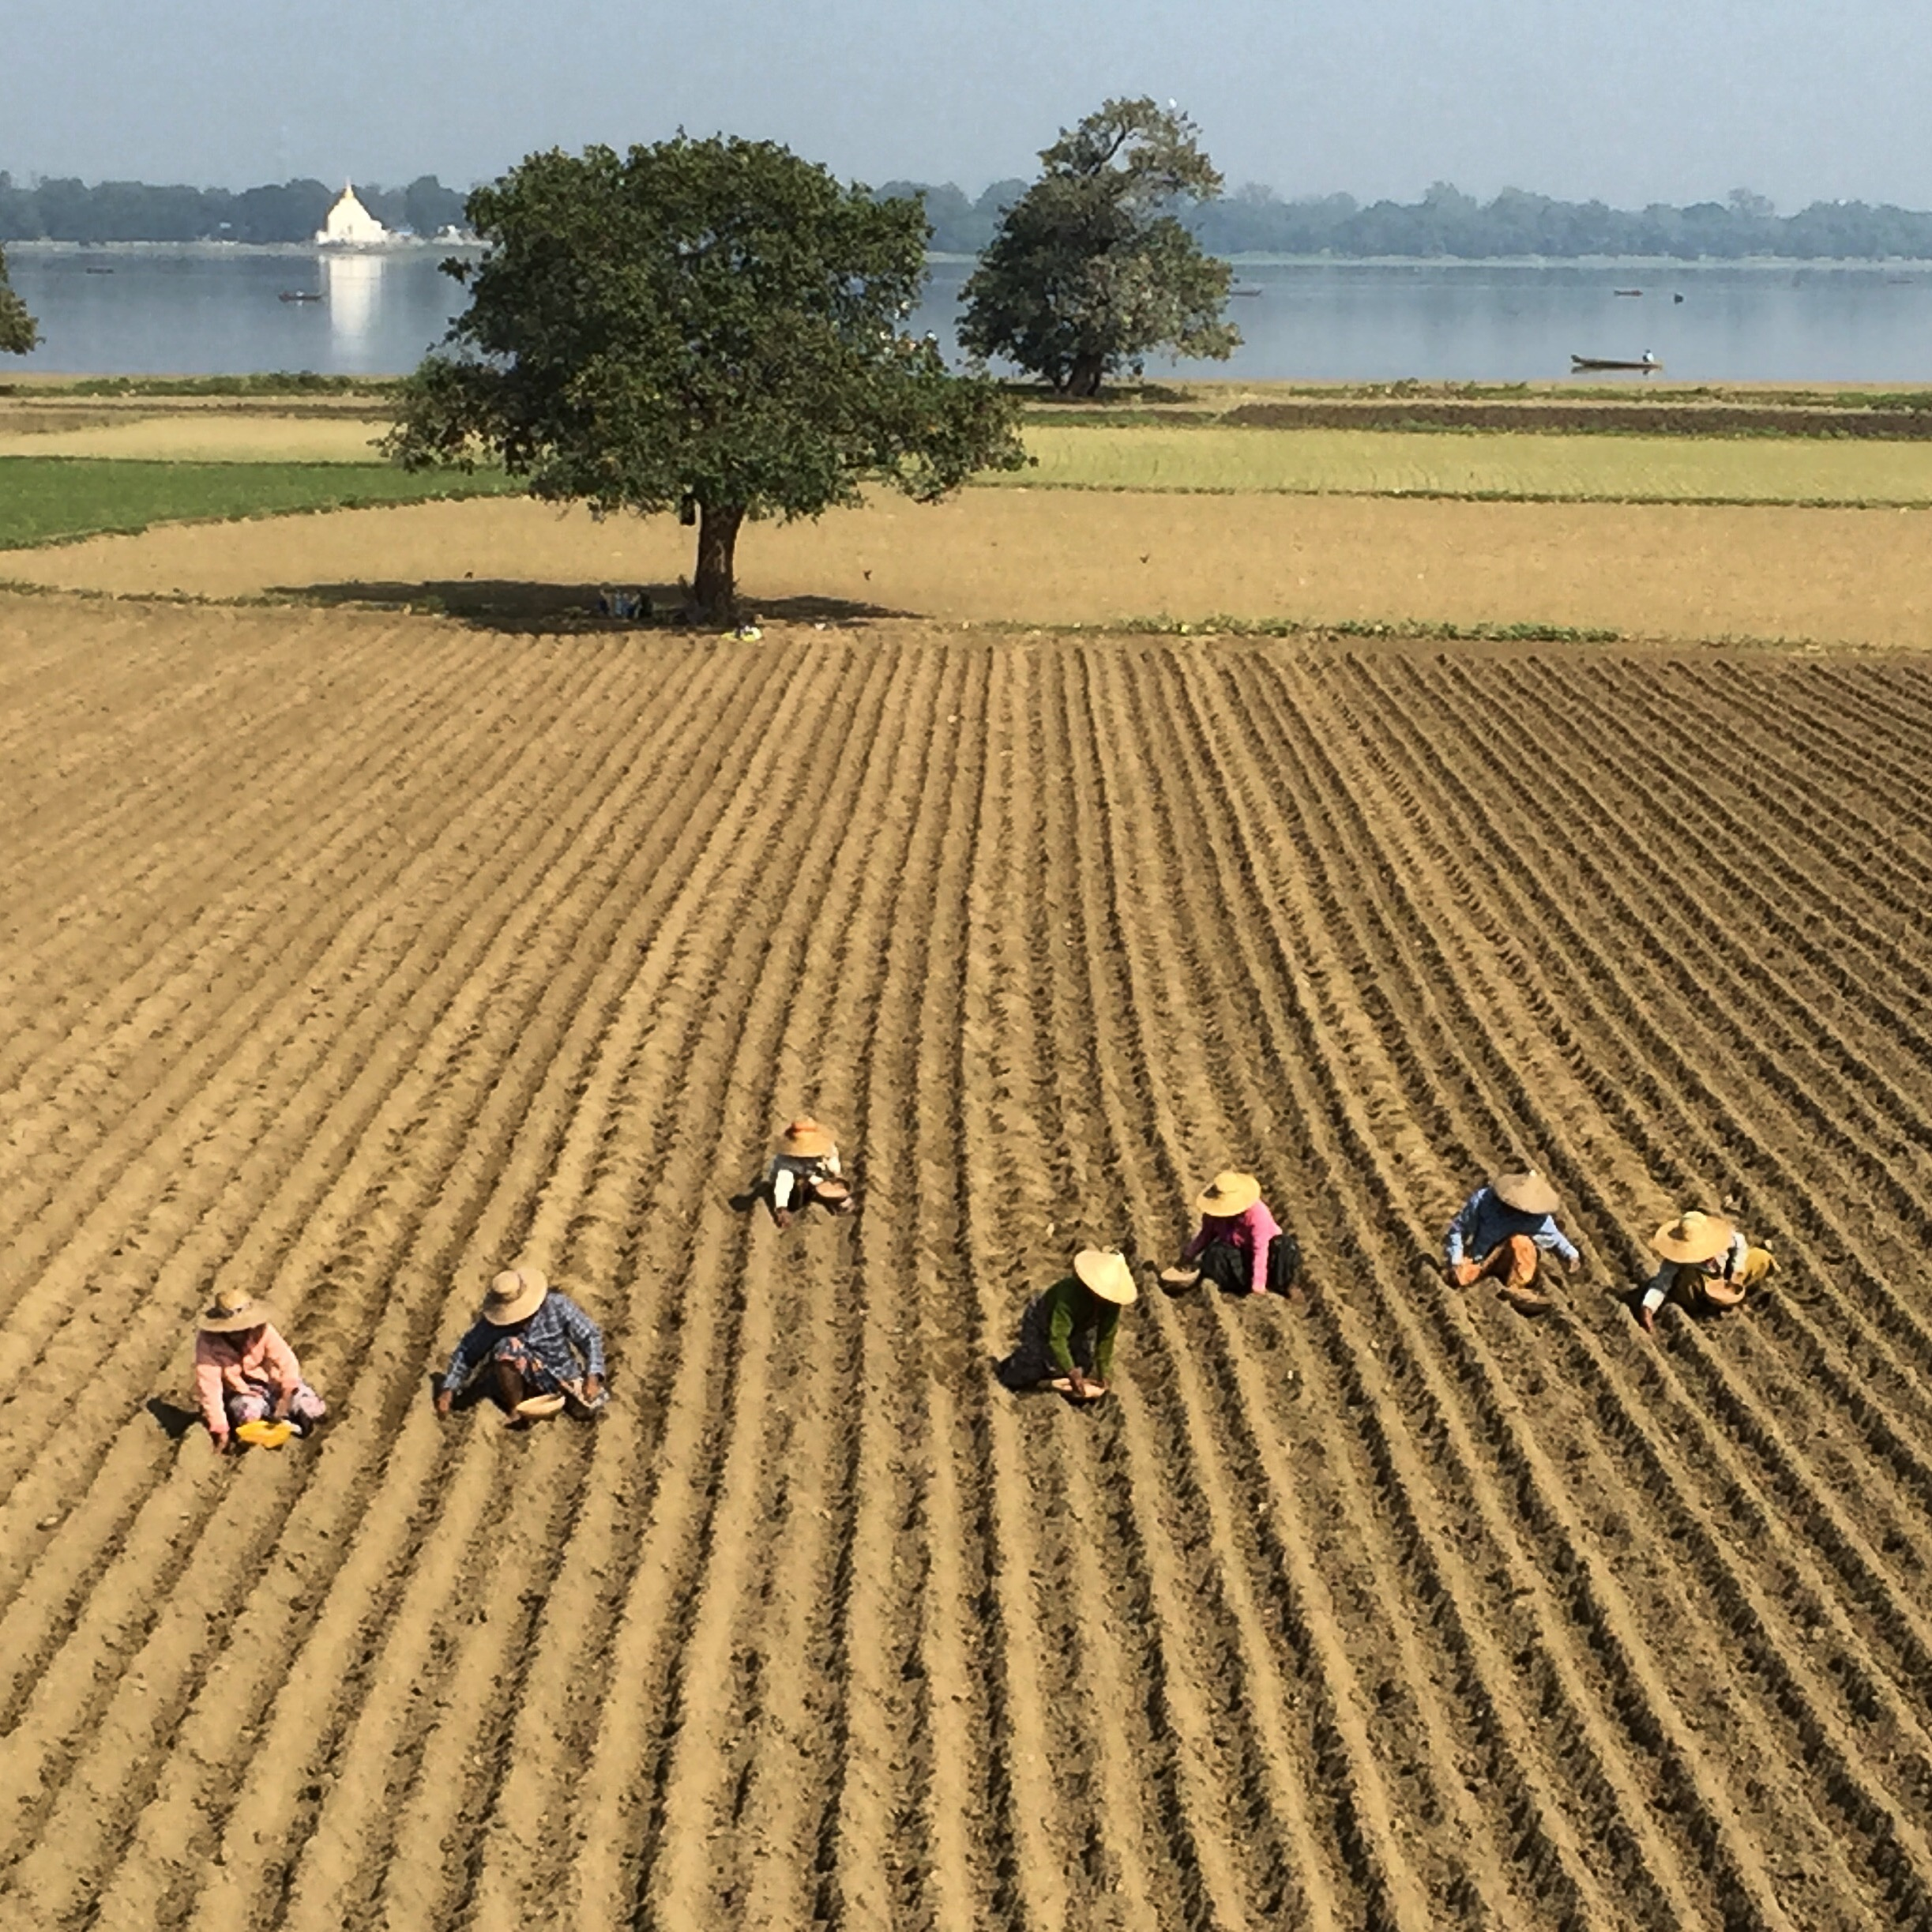 Farmers sowing seeds along the banks for the Irwaddy river outside of Yangon.